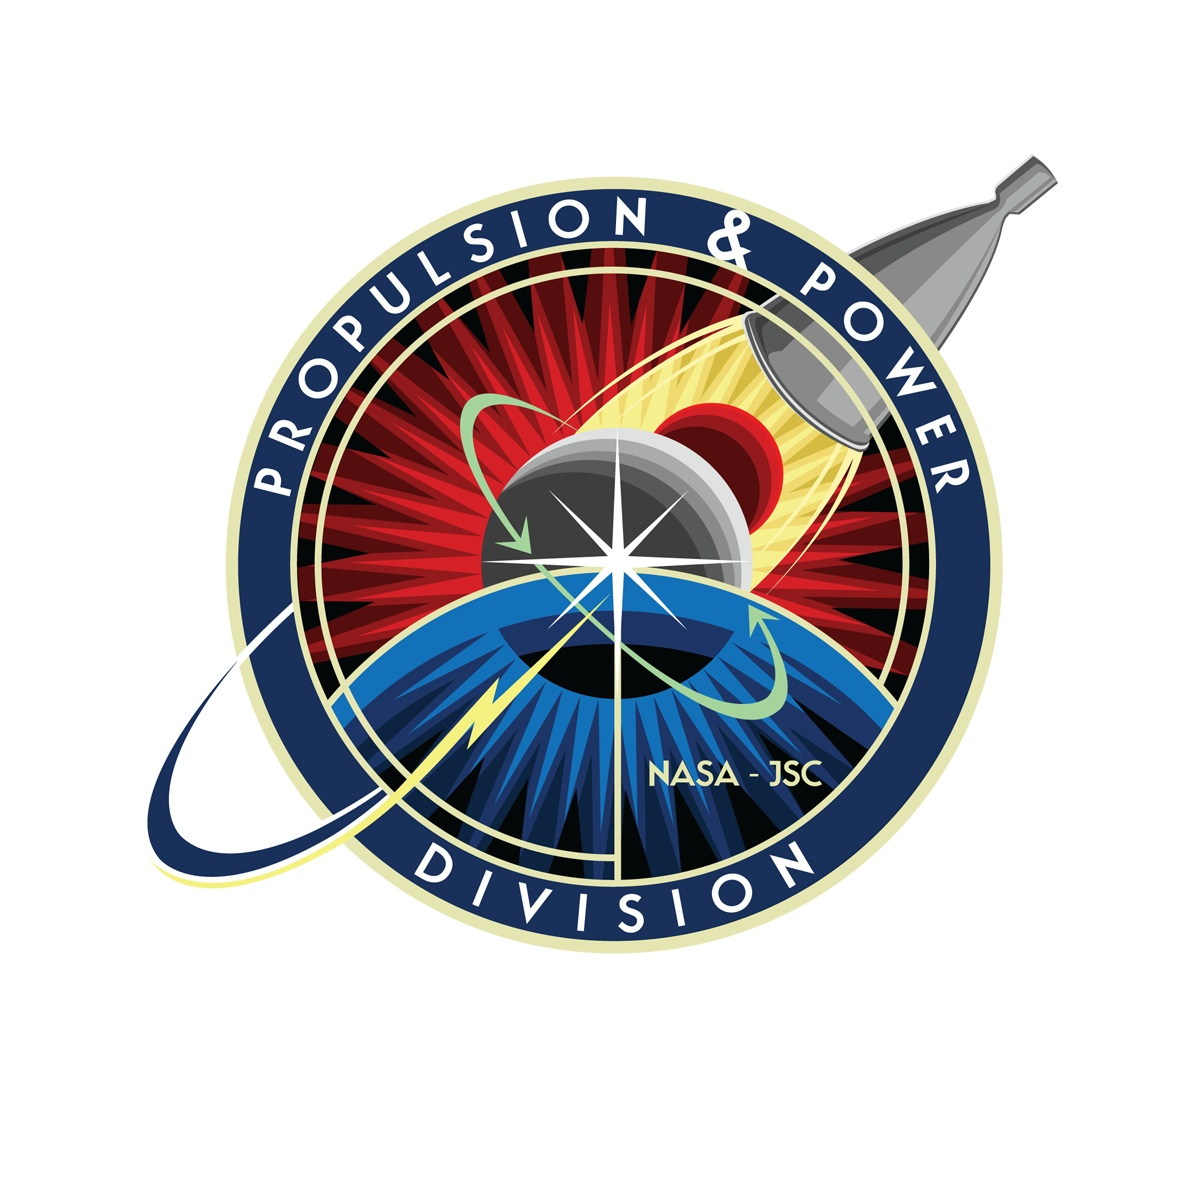 NASA/JSC Propulsion and Power Division